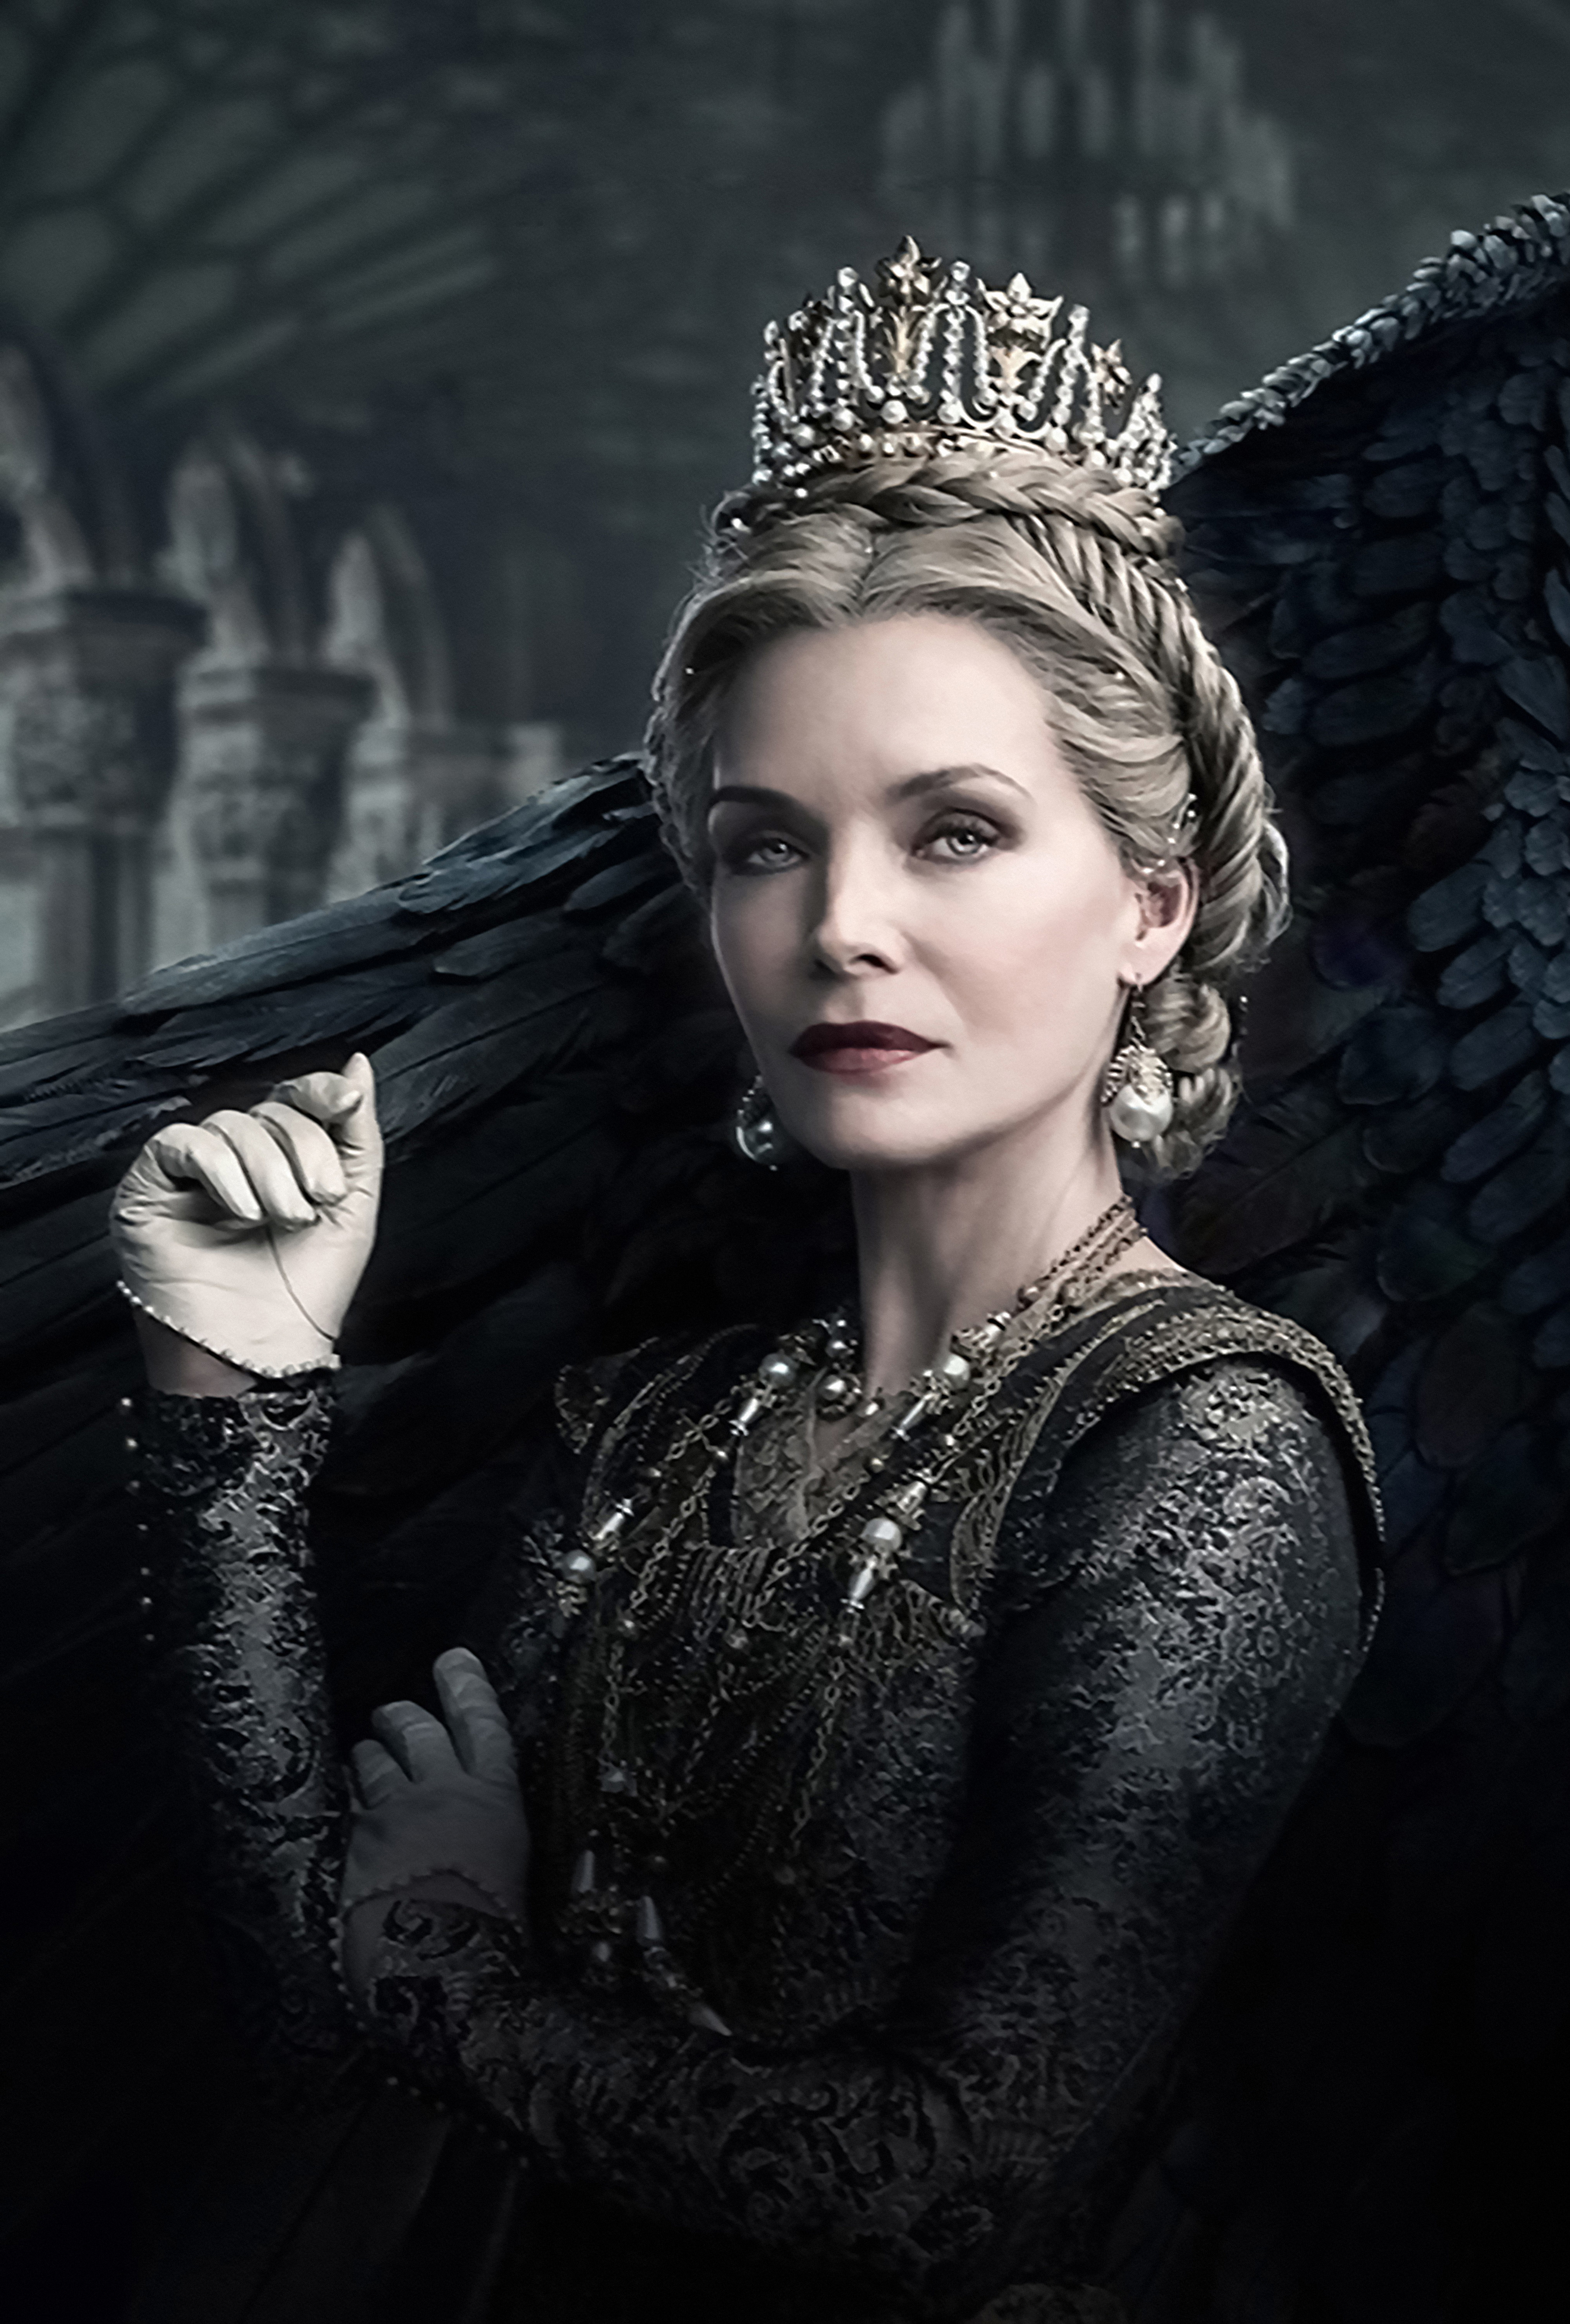 2560x1700 Michelle Pfeiffer In Maleficent Mistress Of Evil